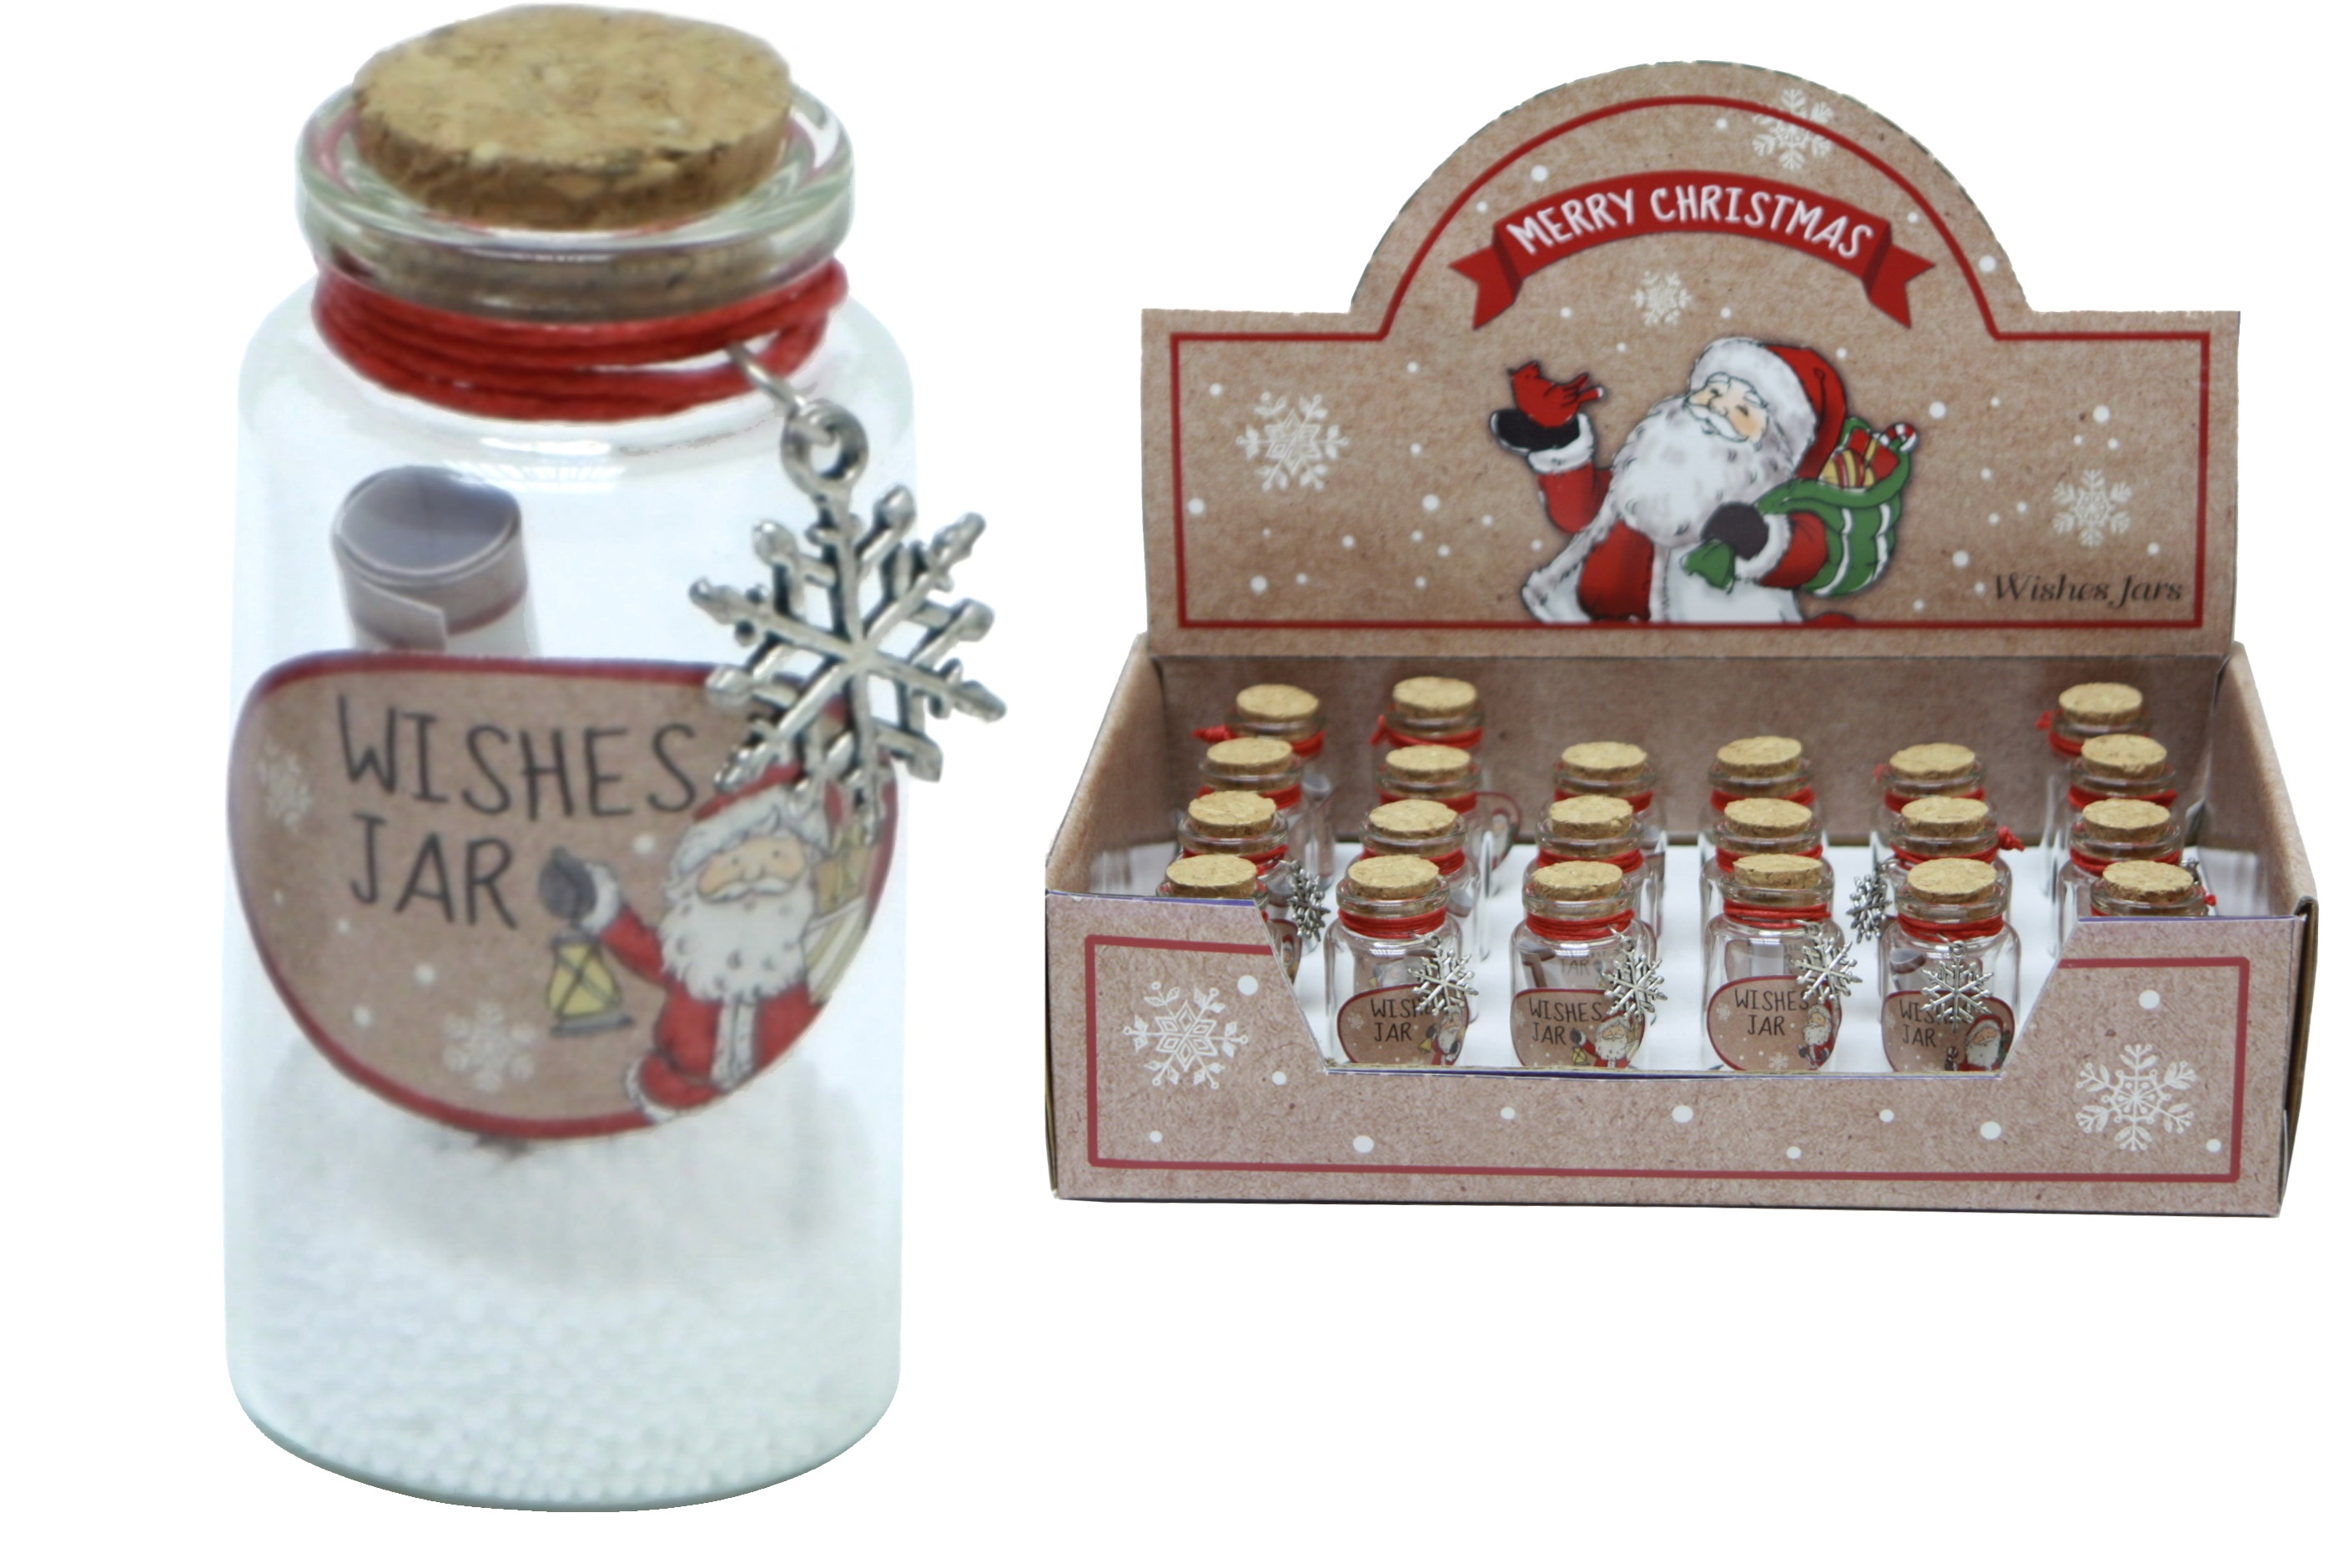 Merry Christmas Small Wishing Jar In Display Box